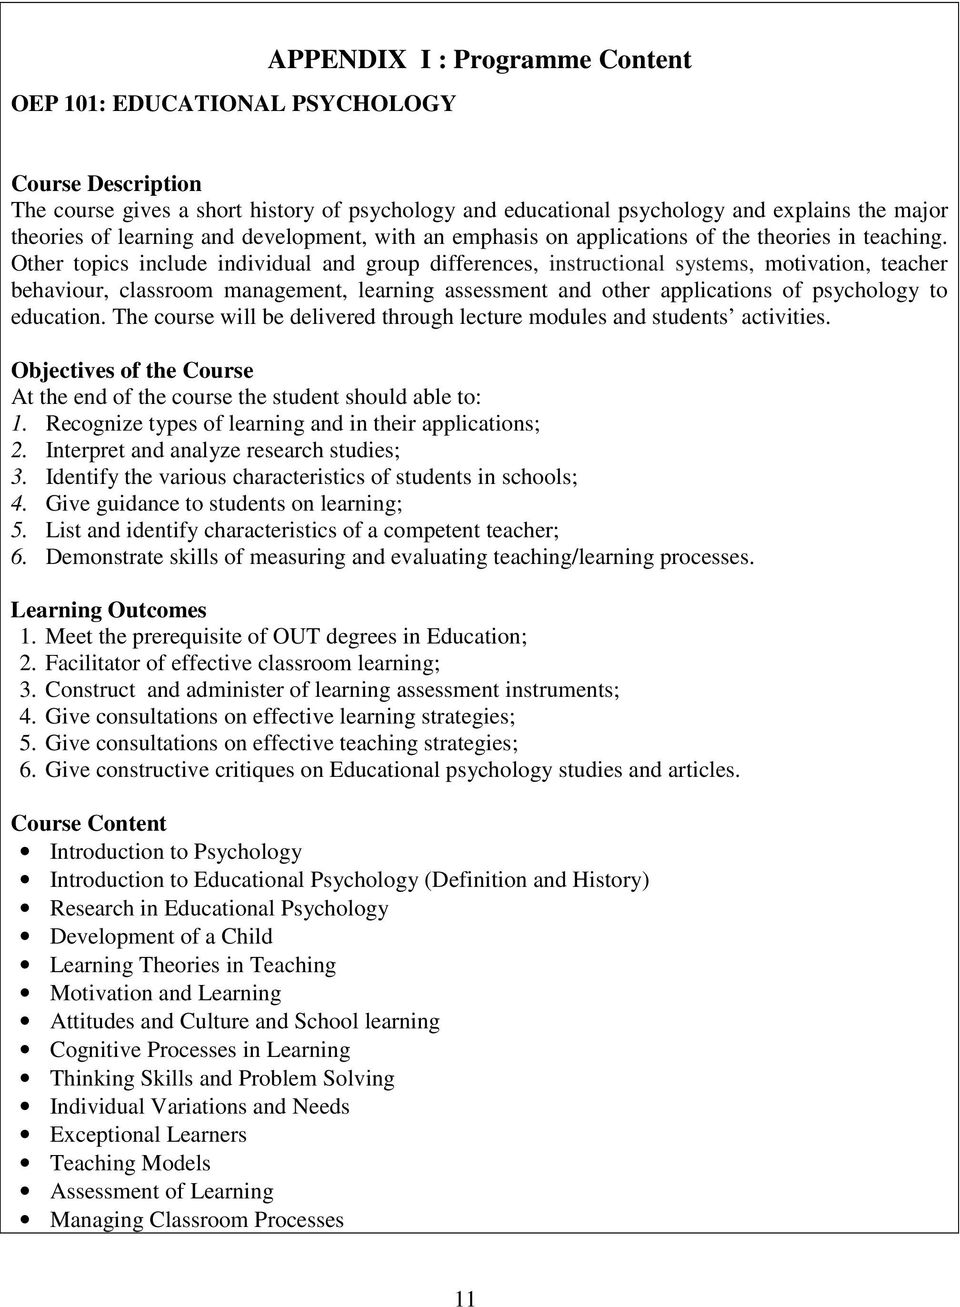 the open university of tanzania faculty of education programme